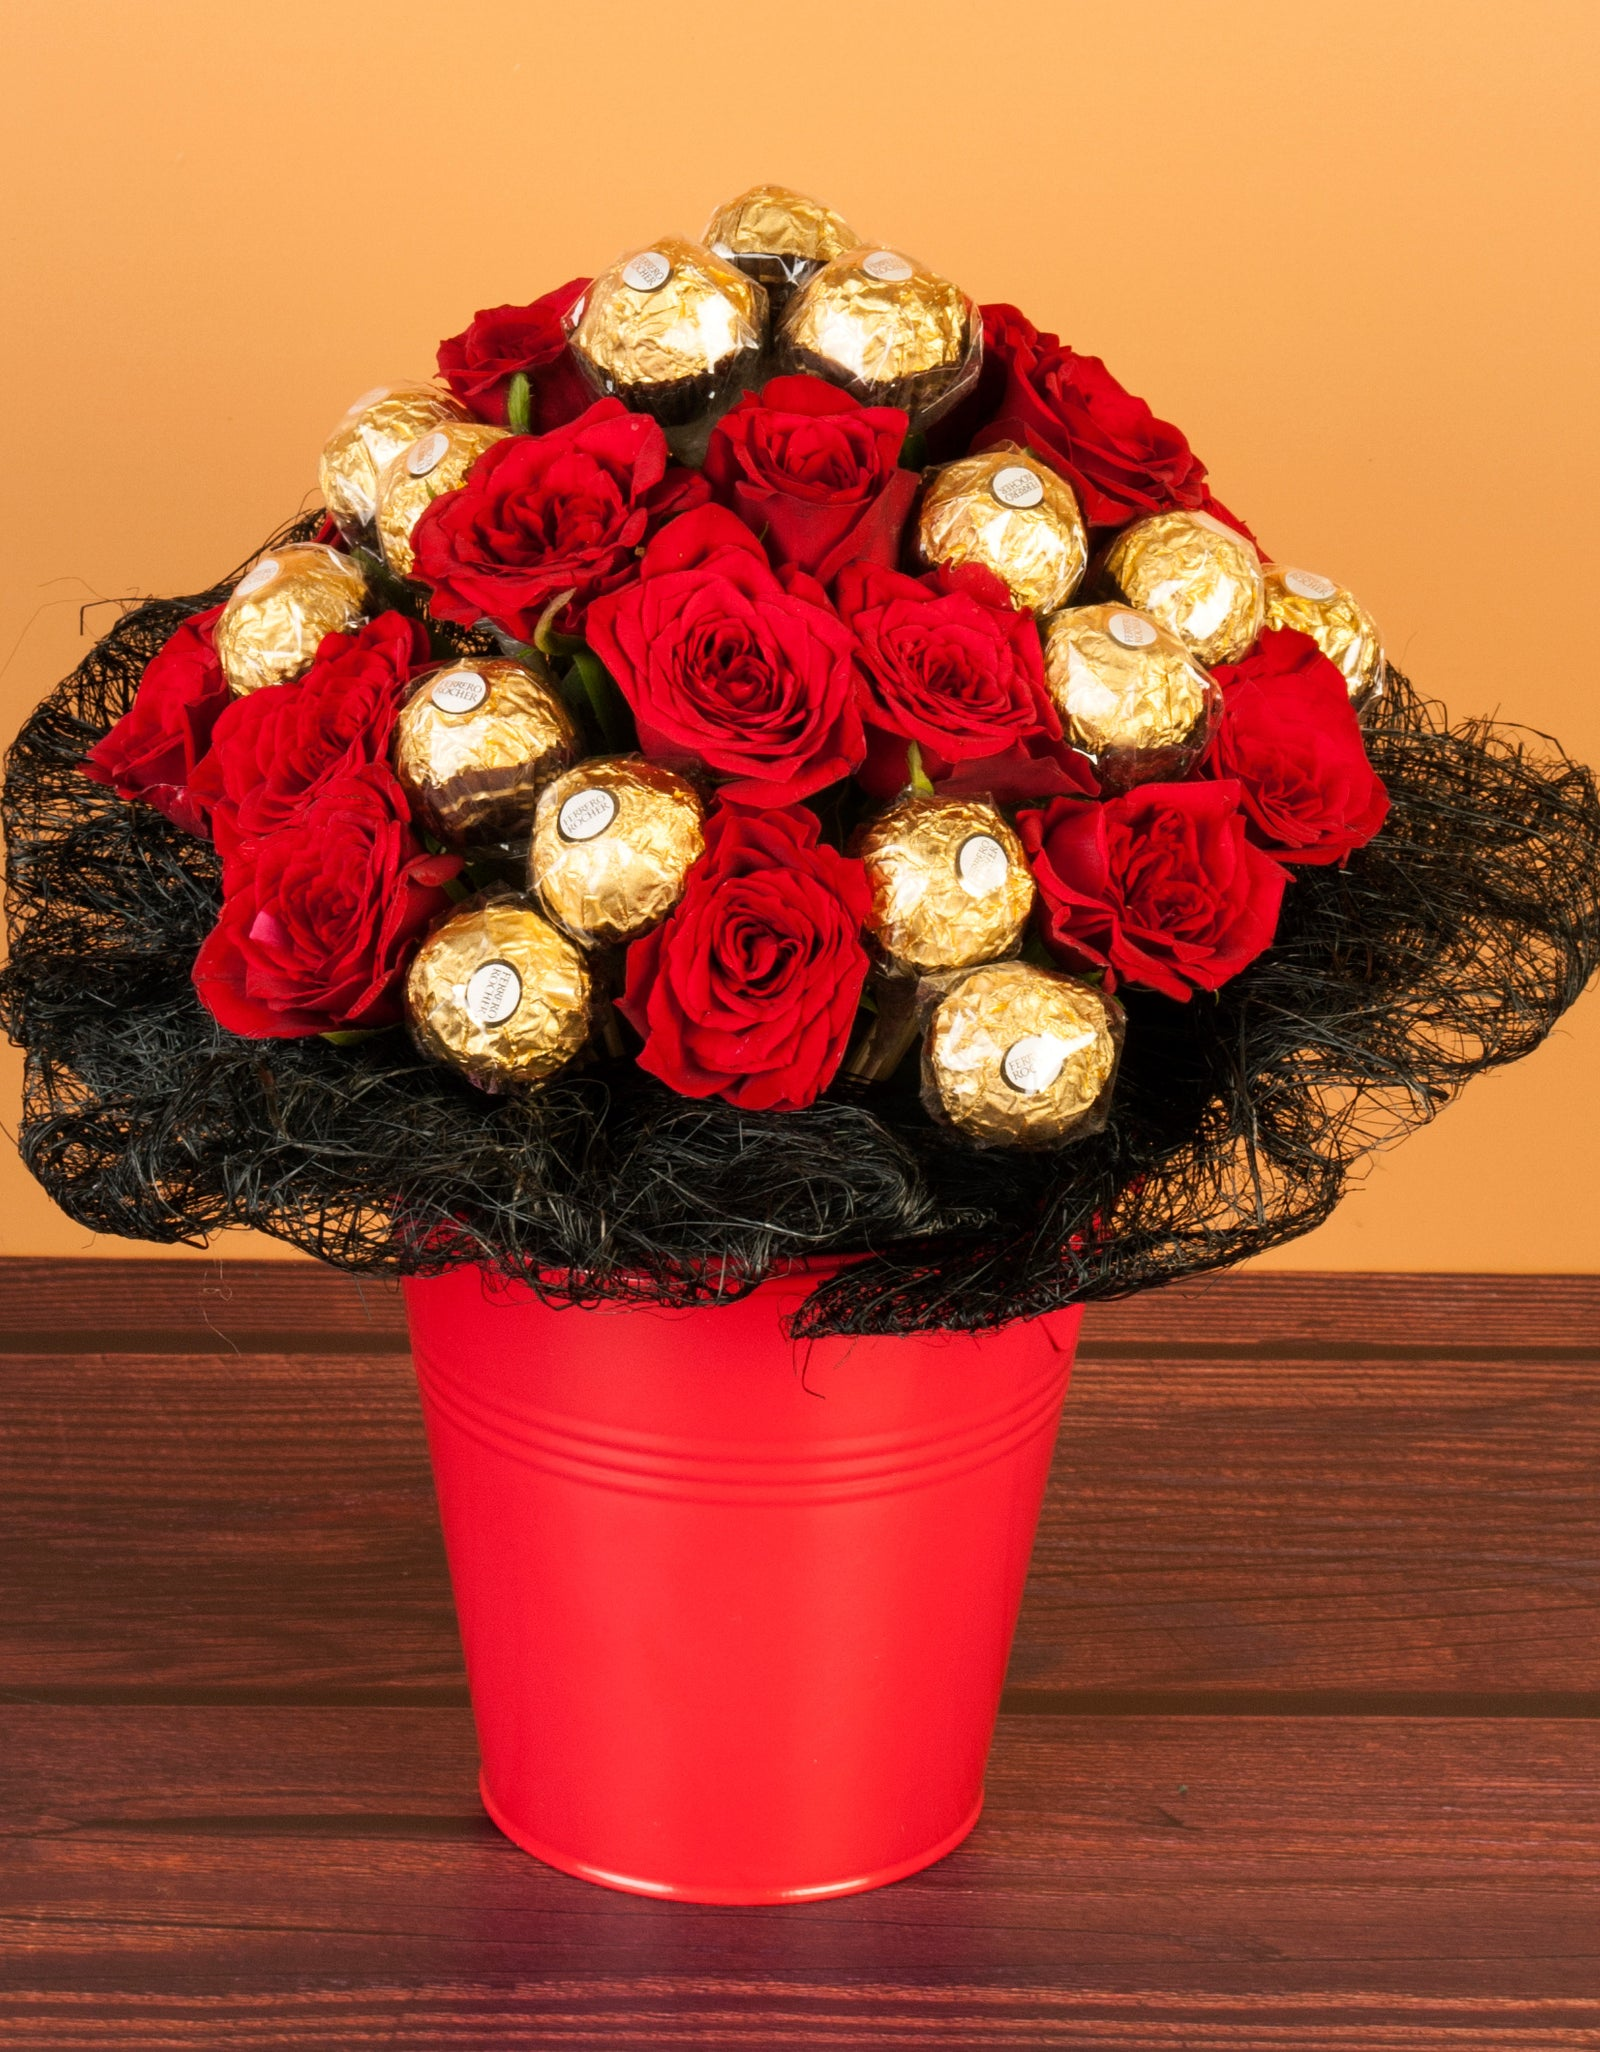 Roses & Ferrero Rocher Chocolates In Metallic Box